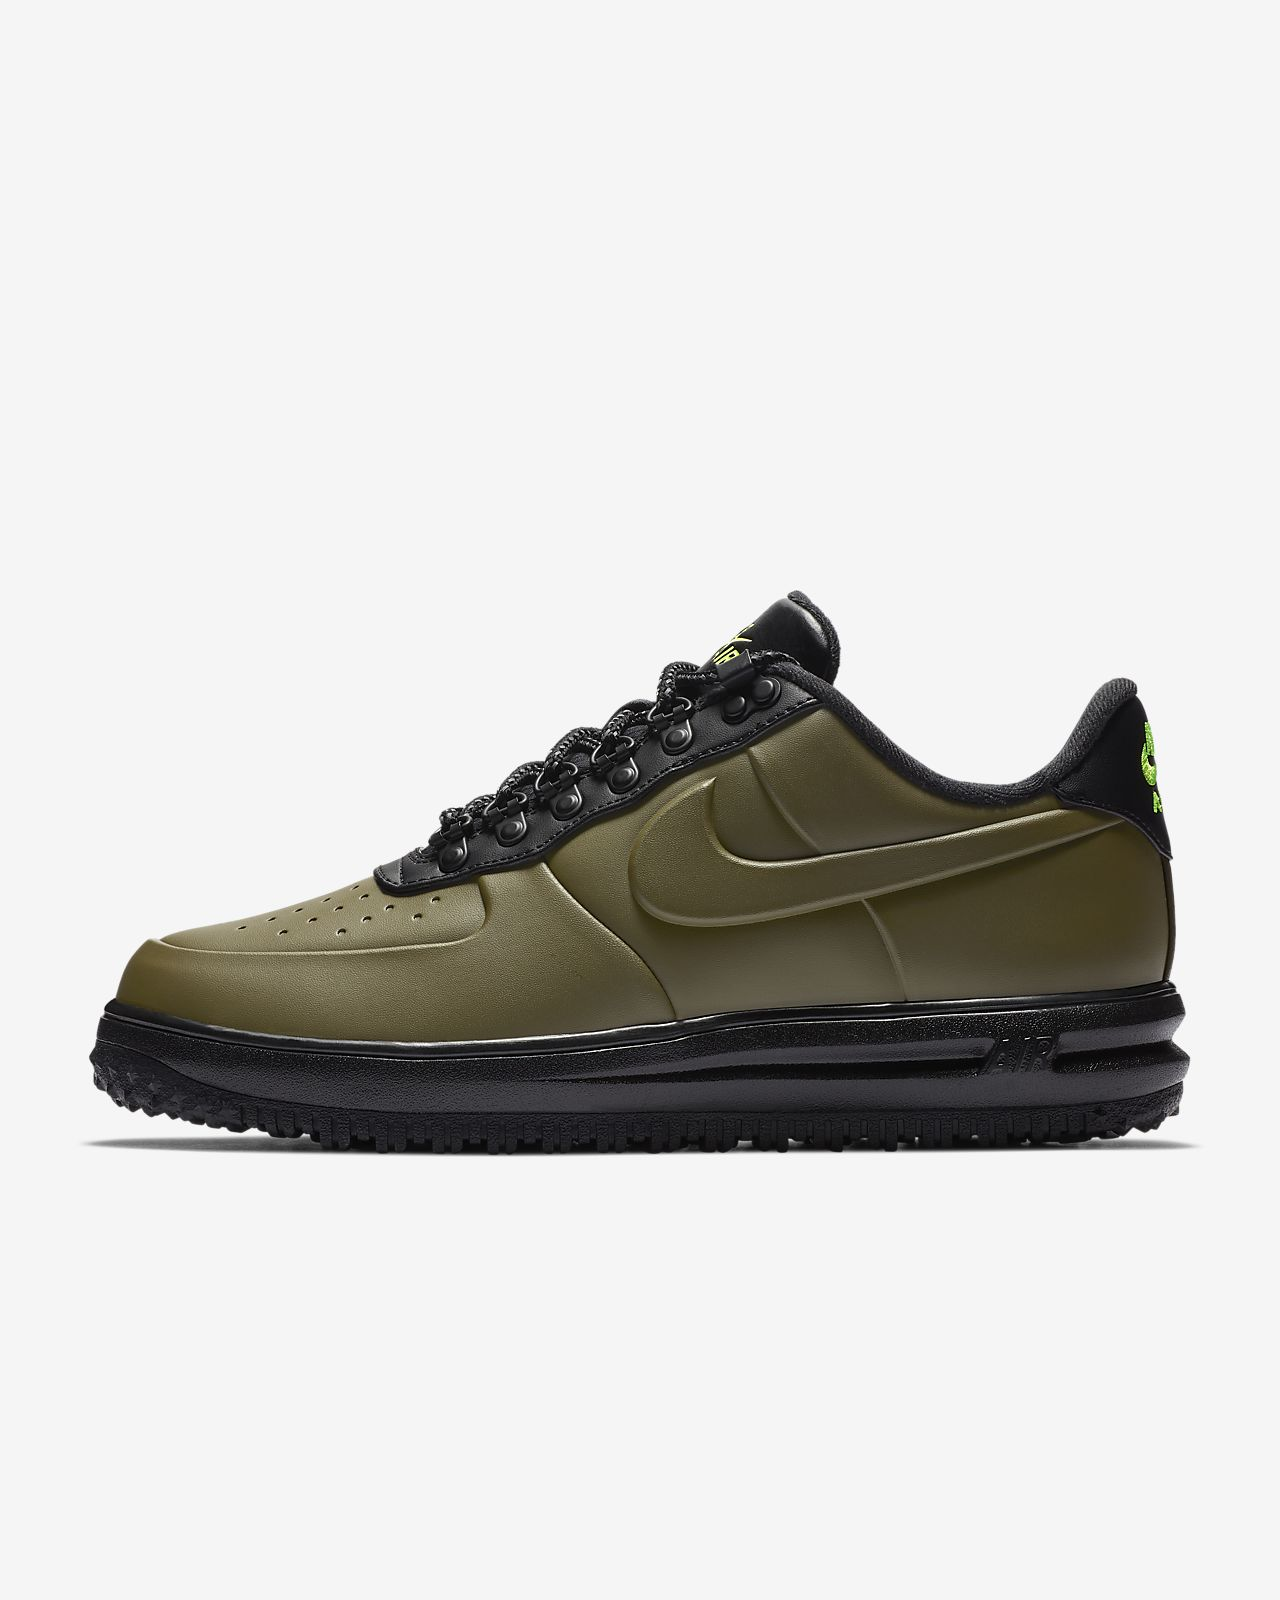 the latest a0c78 87d73 ... Nike Lunar Force 1 Duckboot Low Zapatillas - Hombre